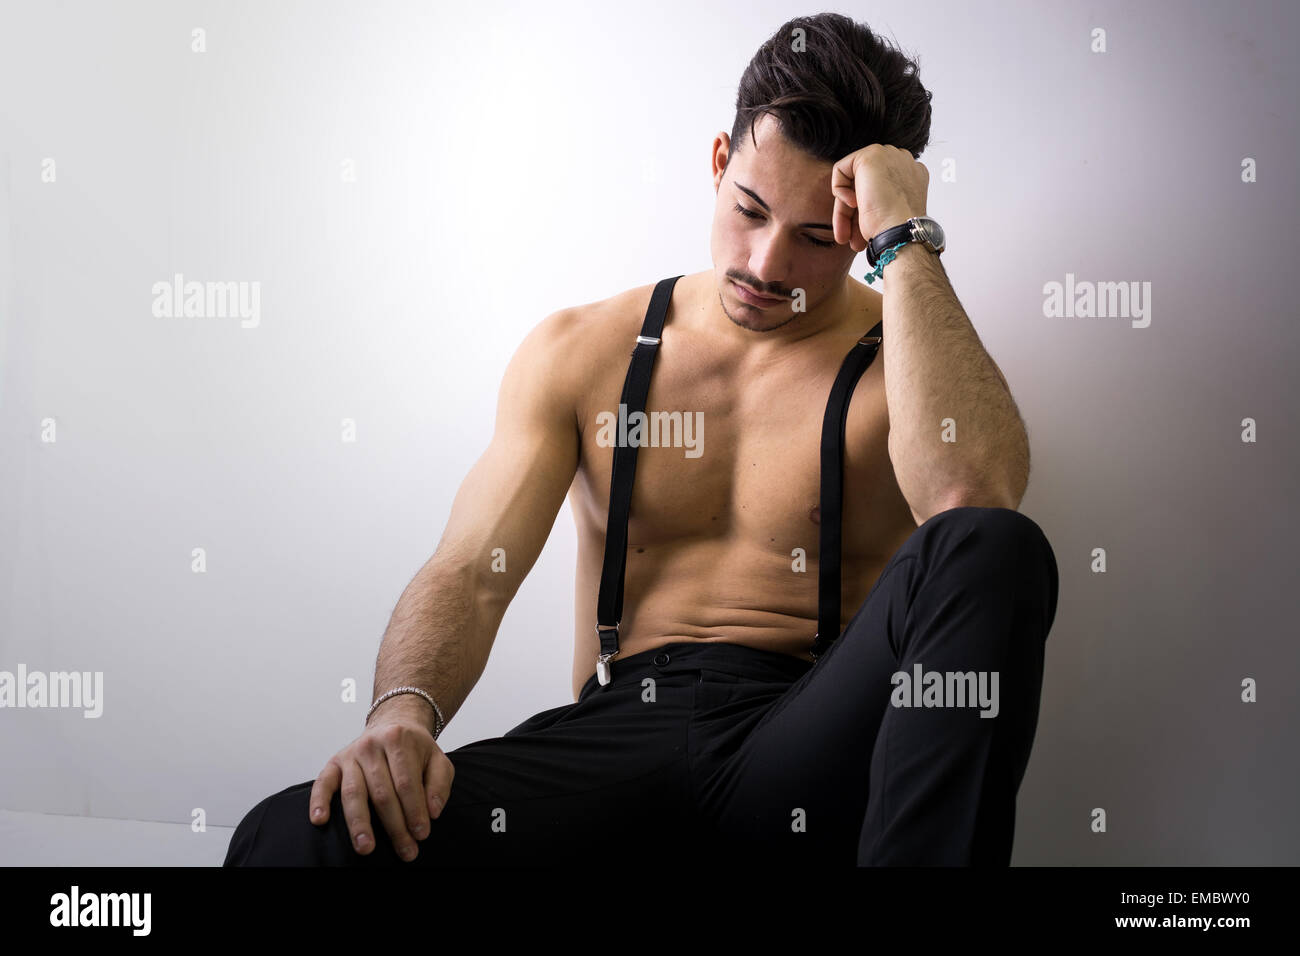 Shirtless athletic young man with suspenders and black pants sitting on floor, looking down sad - Stock Image